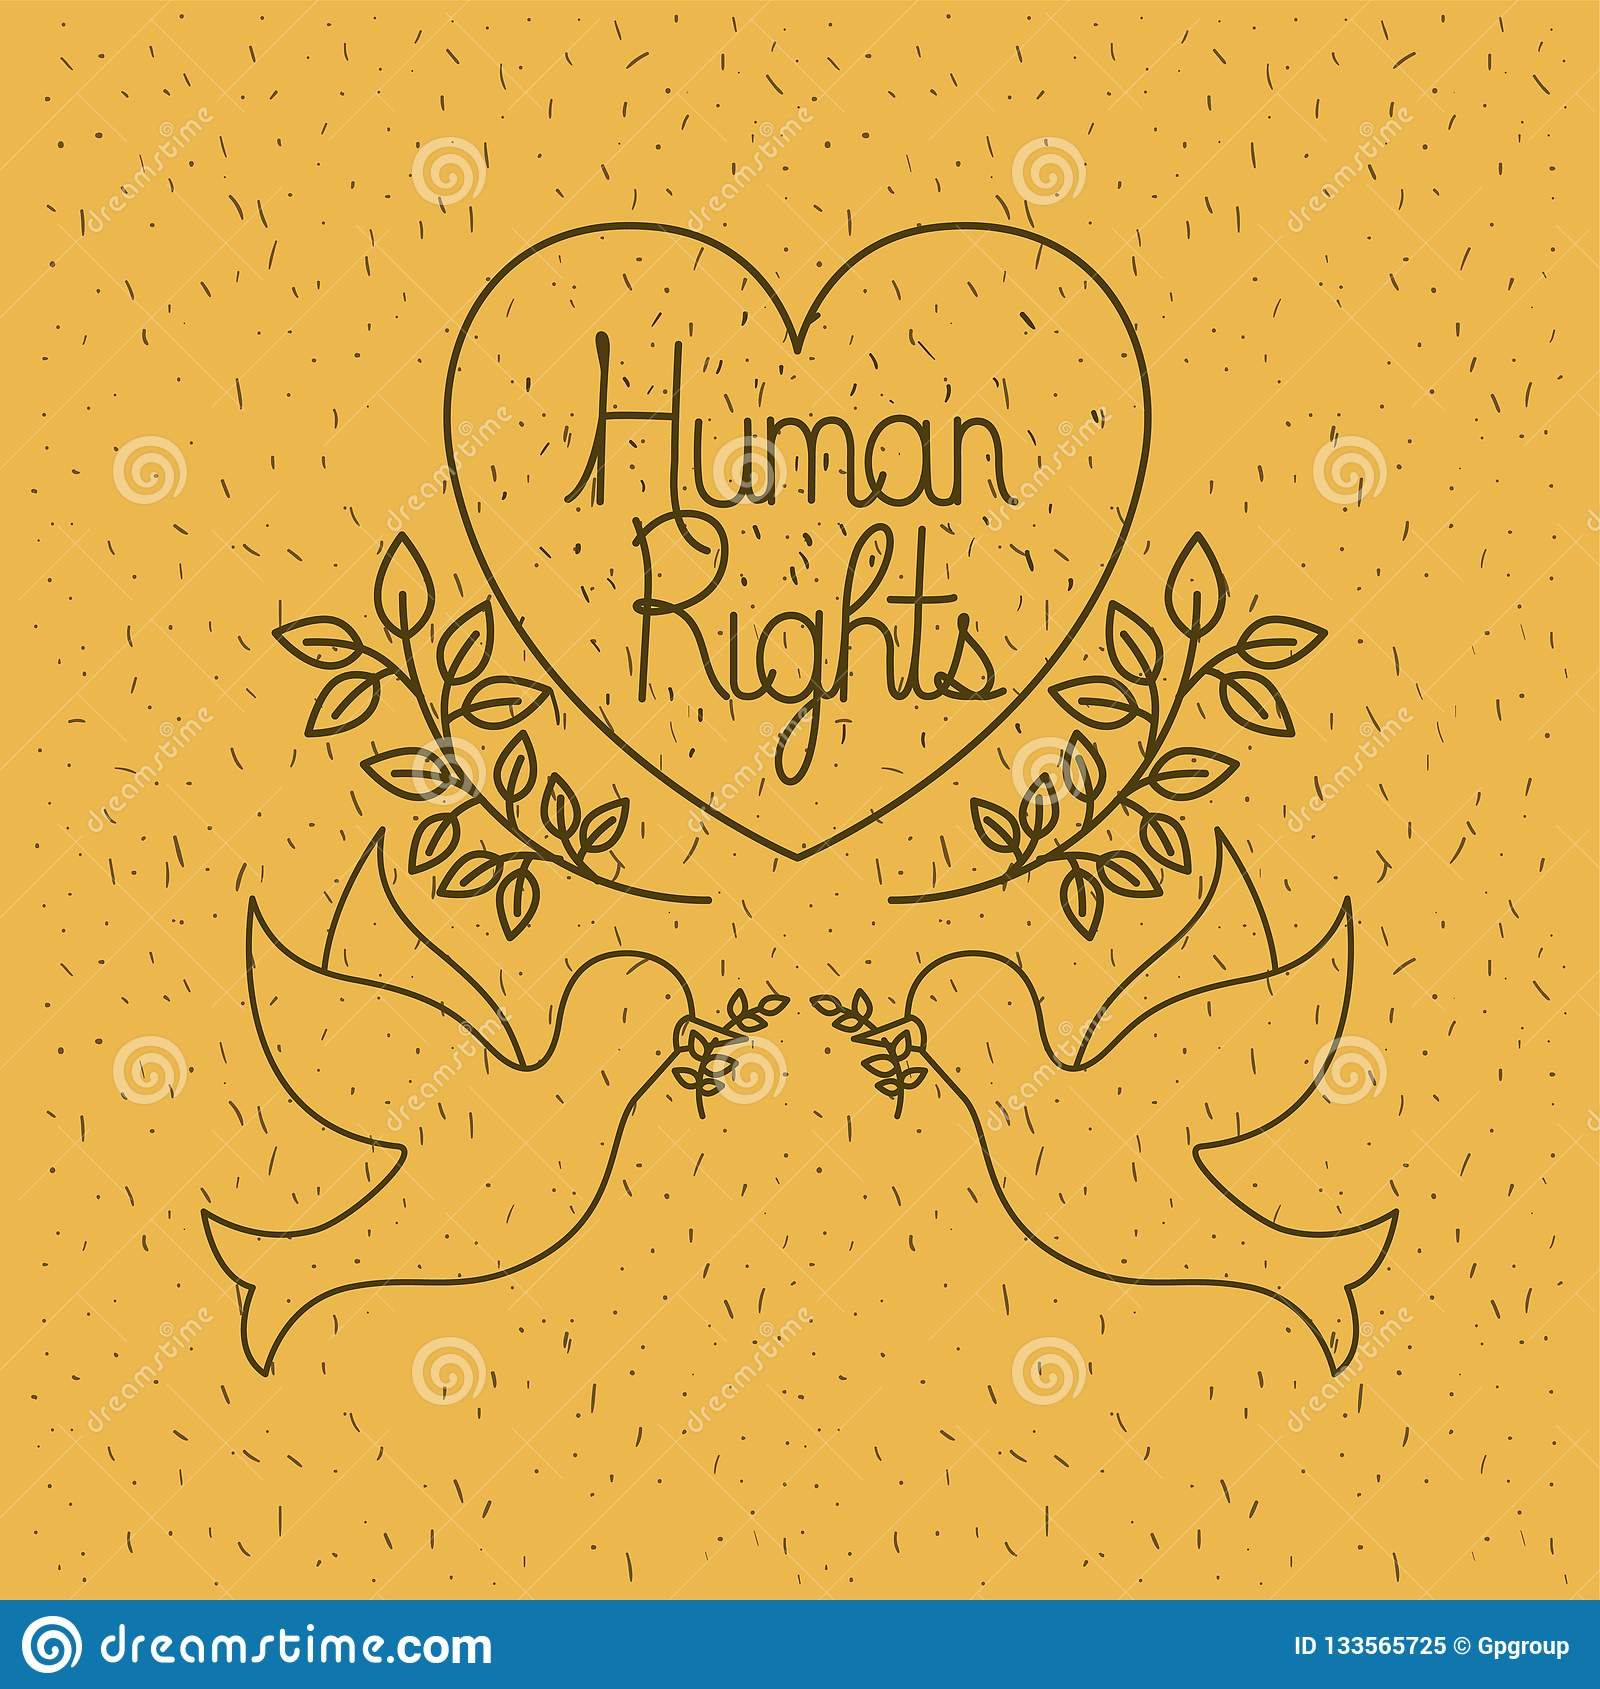 Doves Flying With Heart Human Rights Drawns Stock Vector